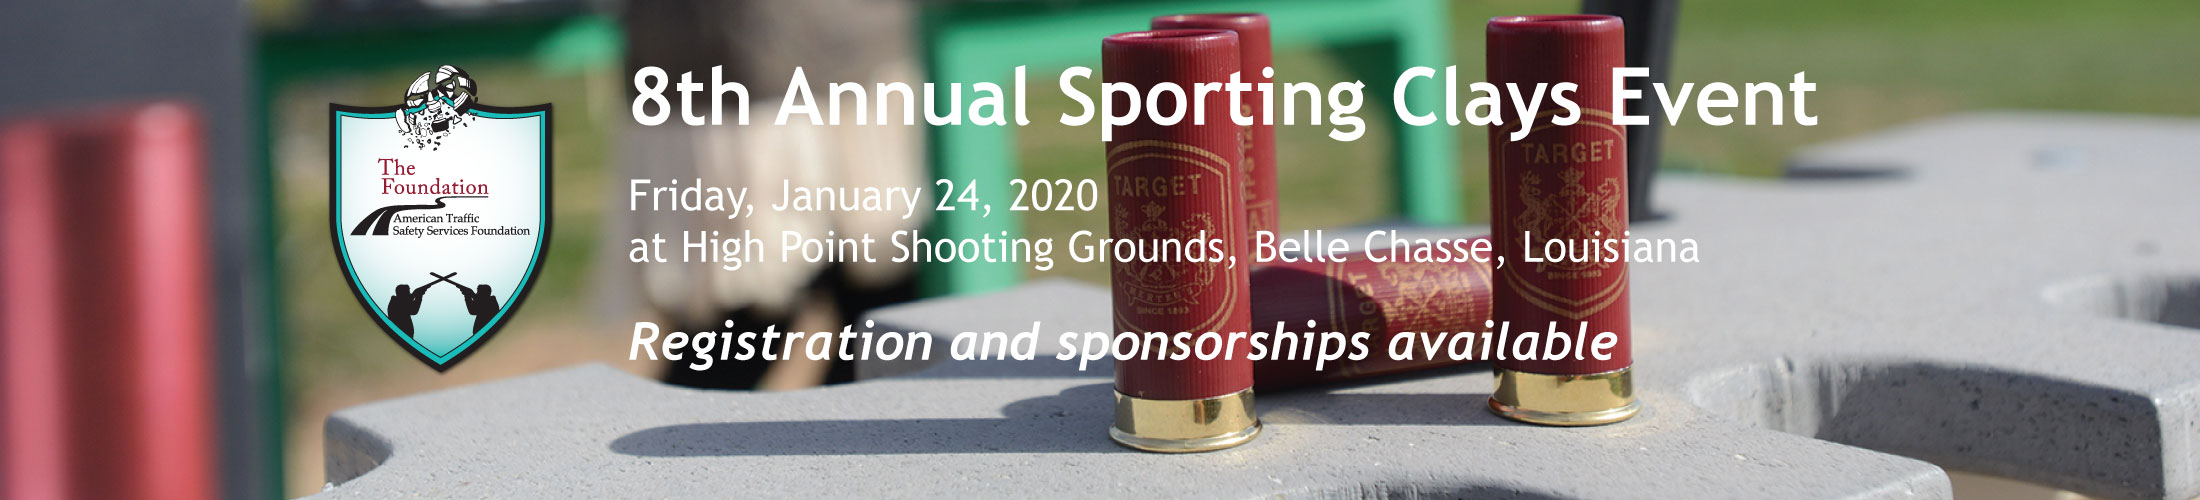 Sporting Clays Event